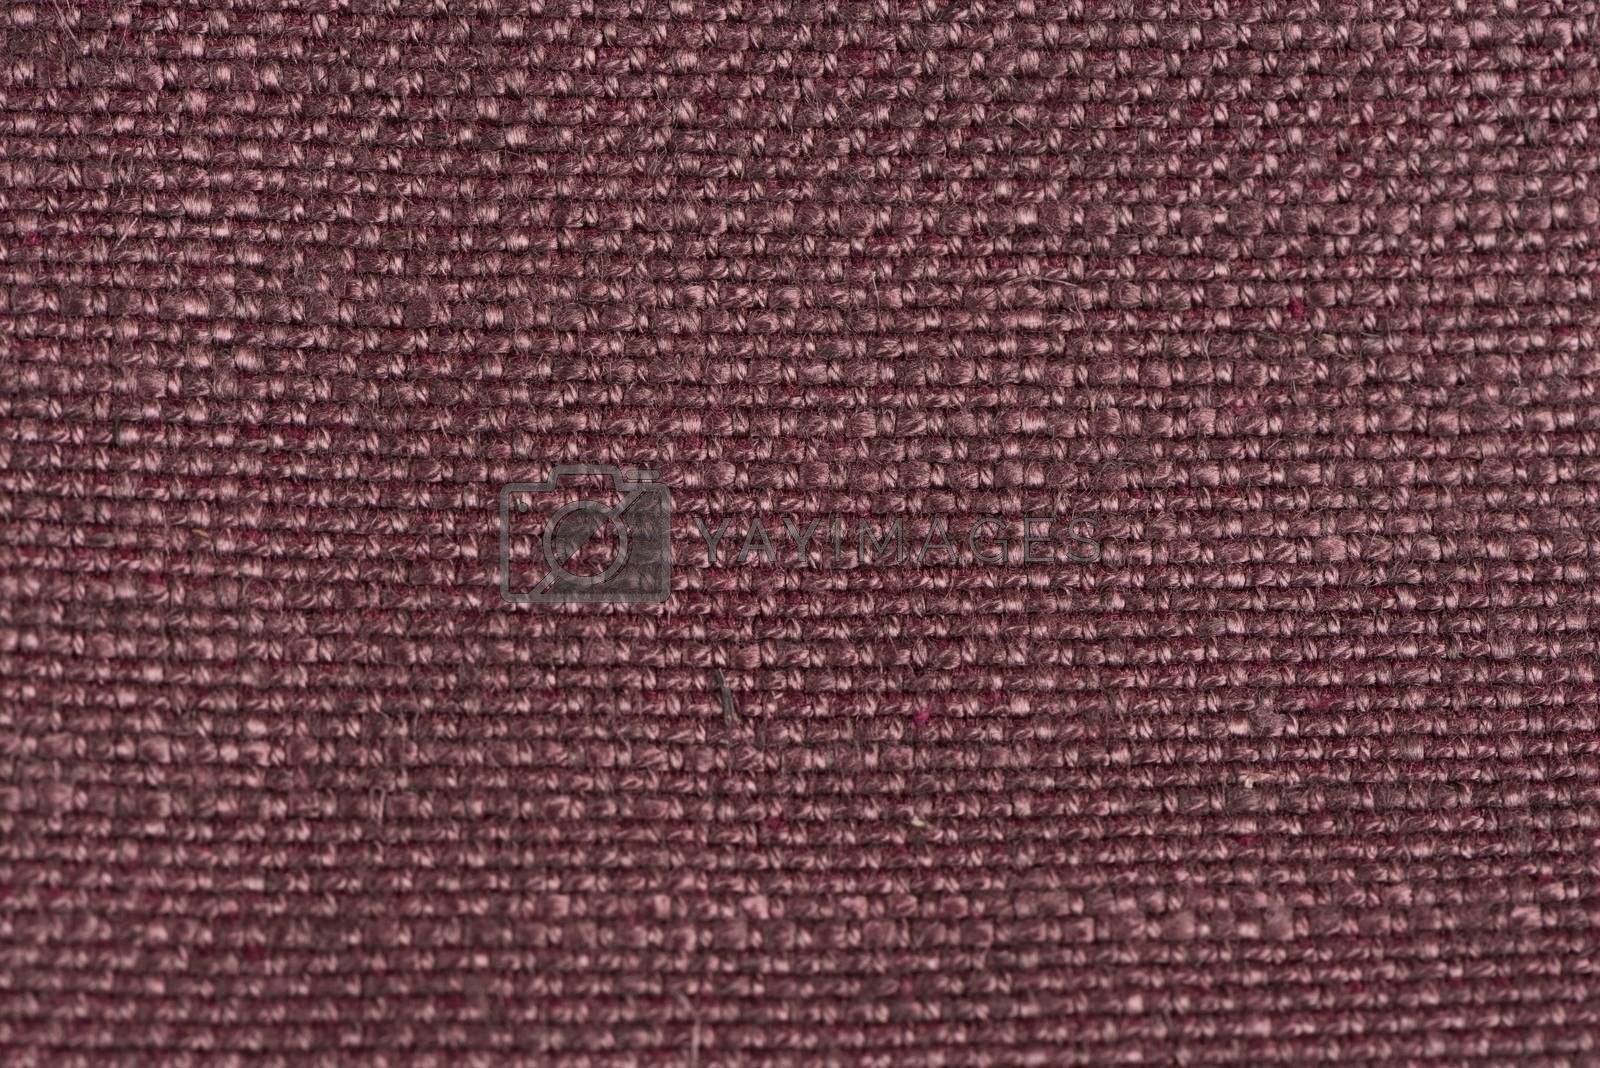 Pink fabric texture by homydesign